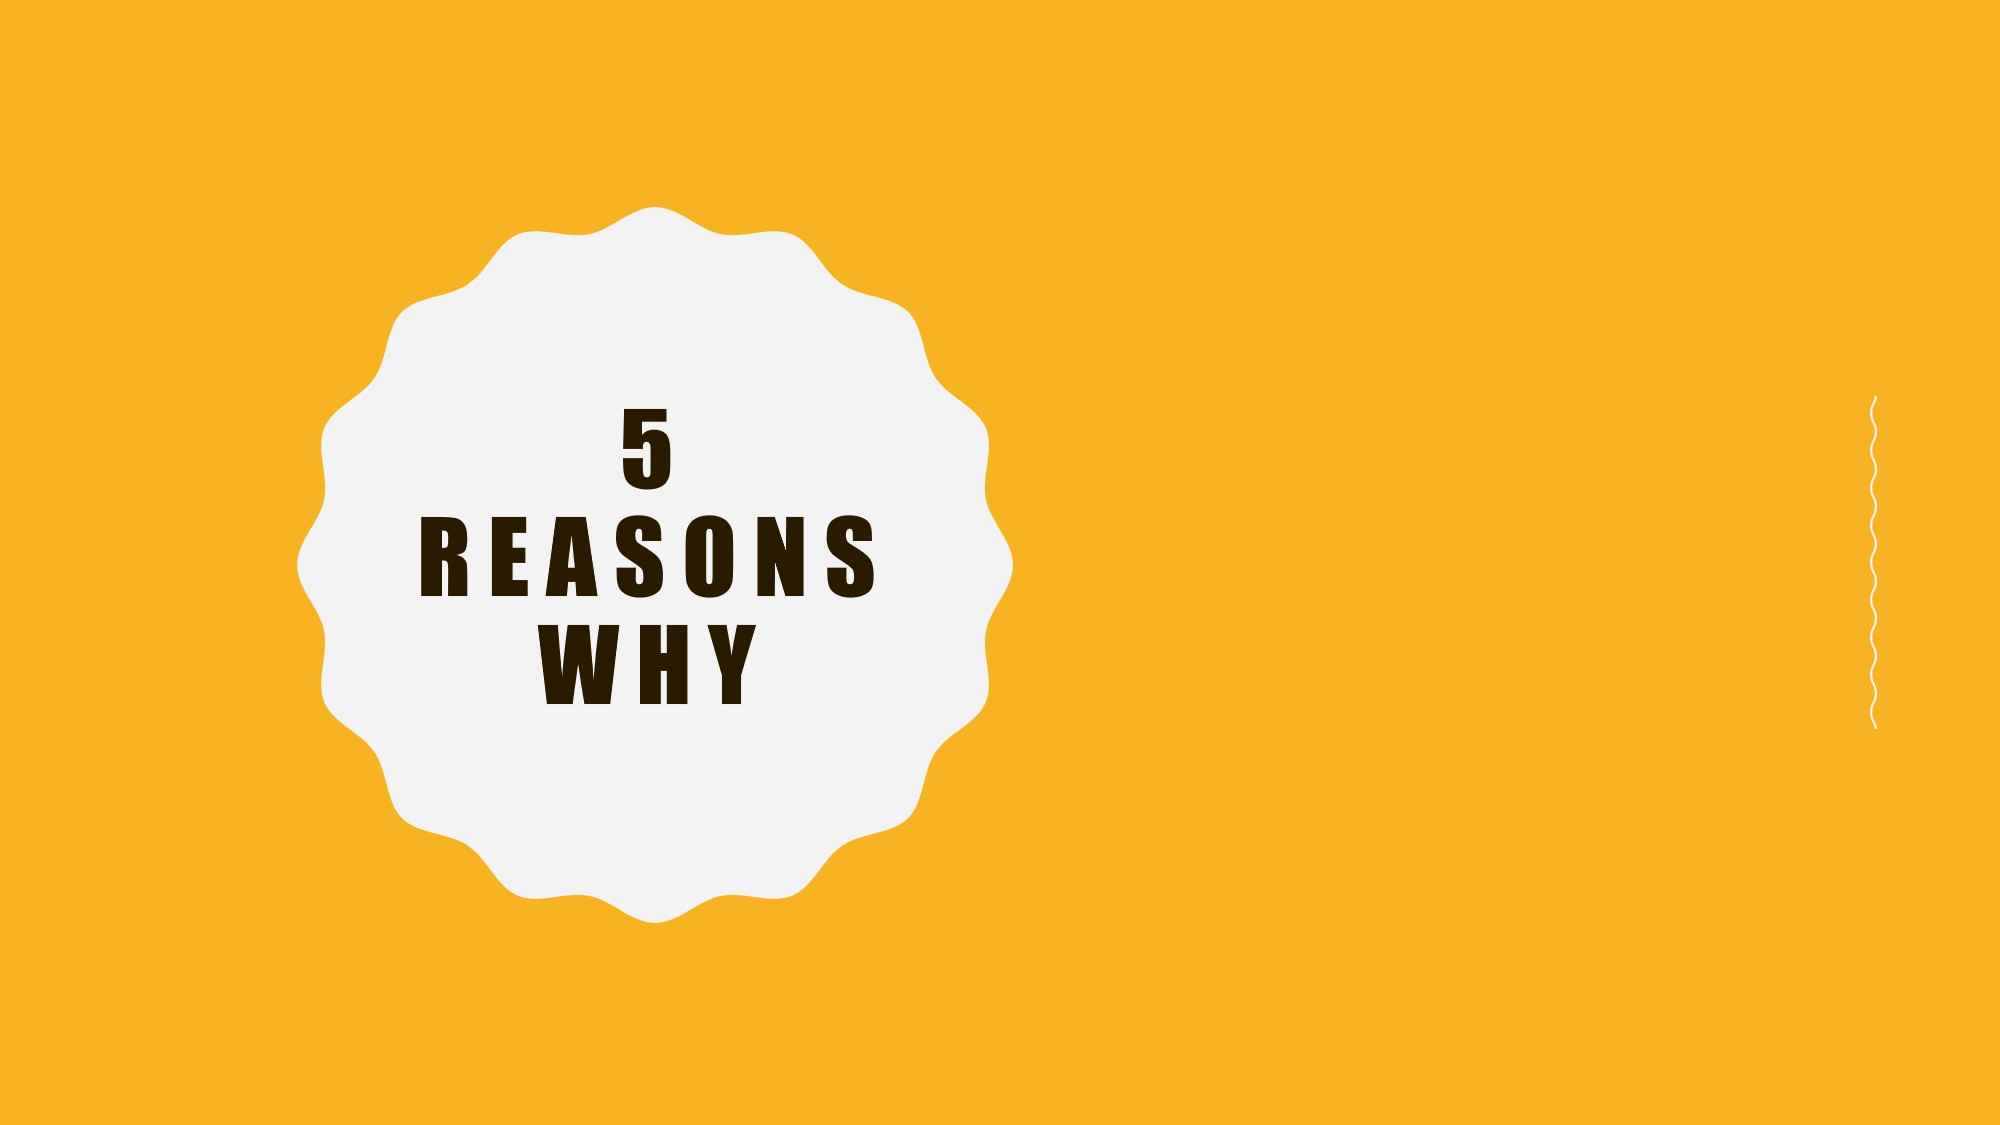 5 Reasons Why.jpg